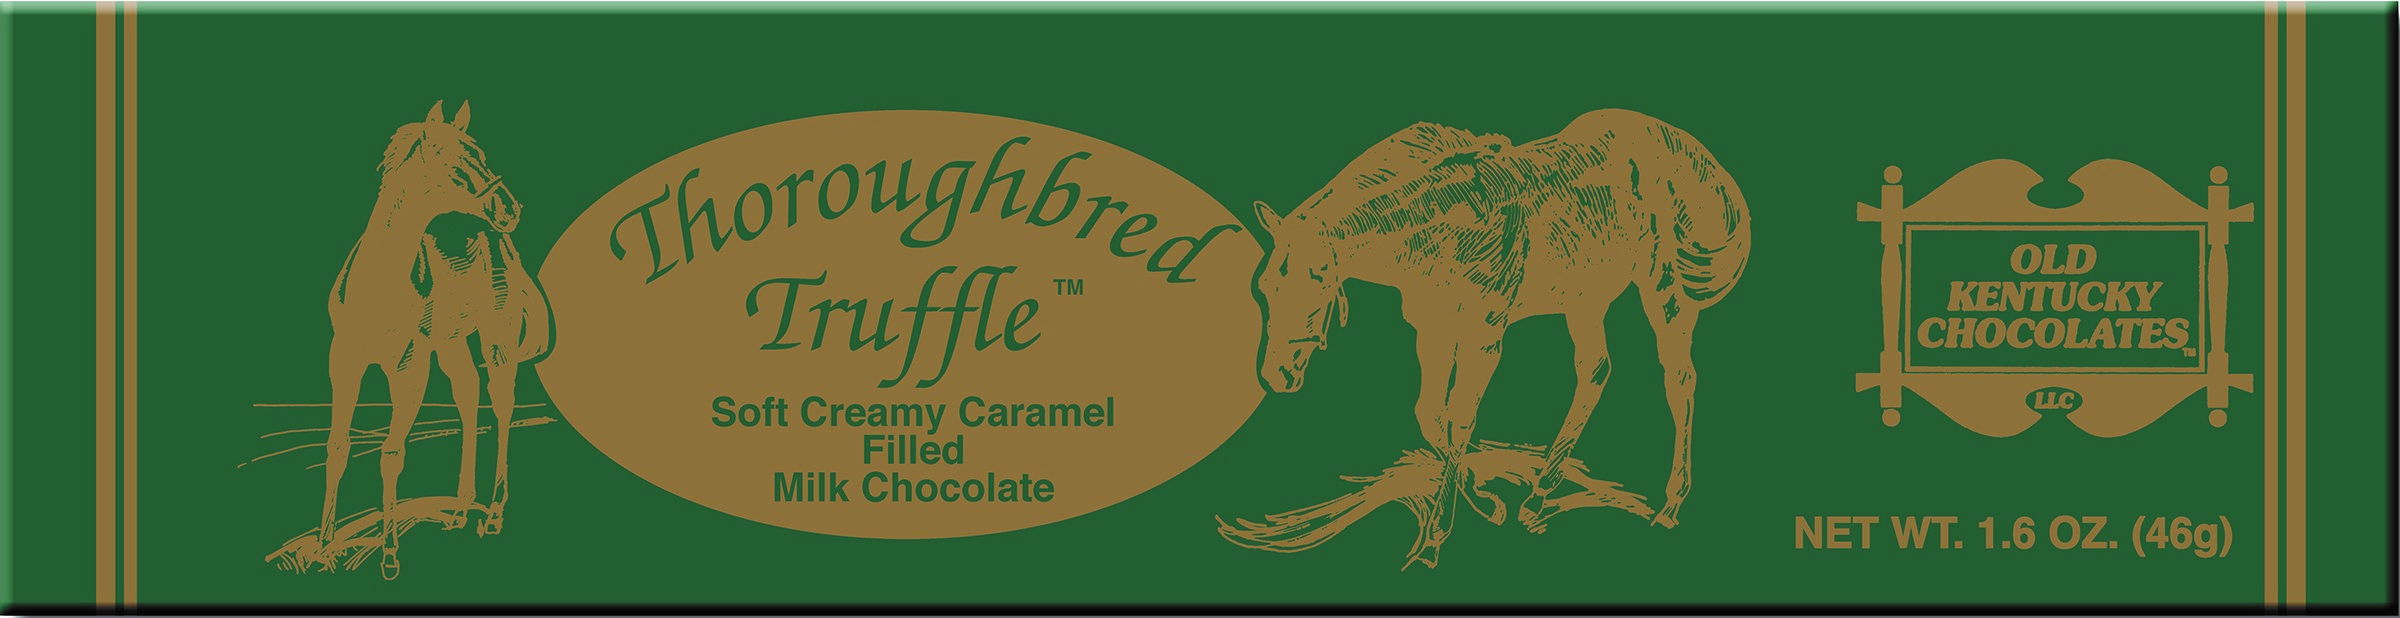 Old Kentucky Chocolates Thoroughbred Truffle Caramel Fundraising